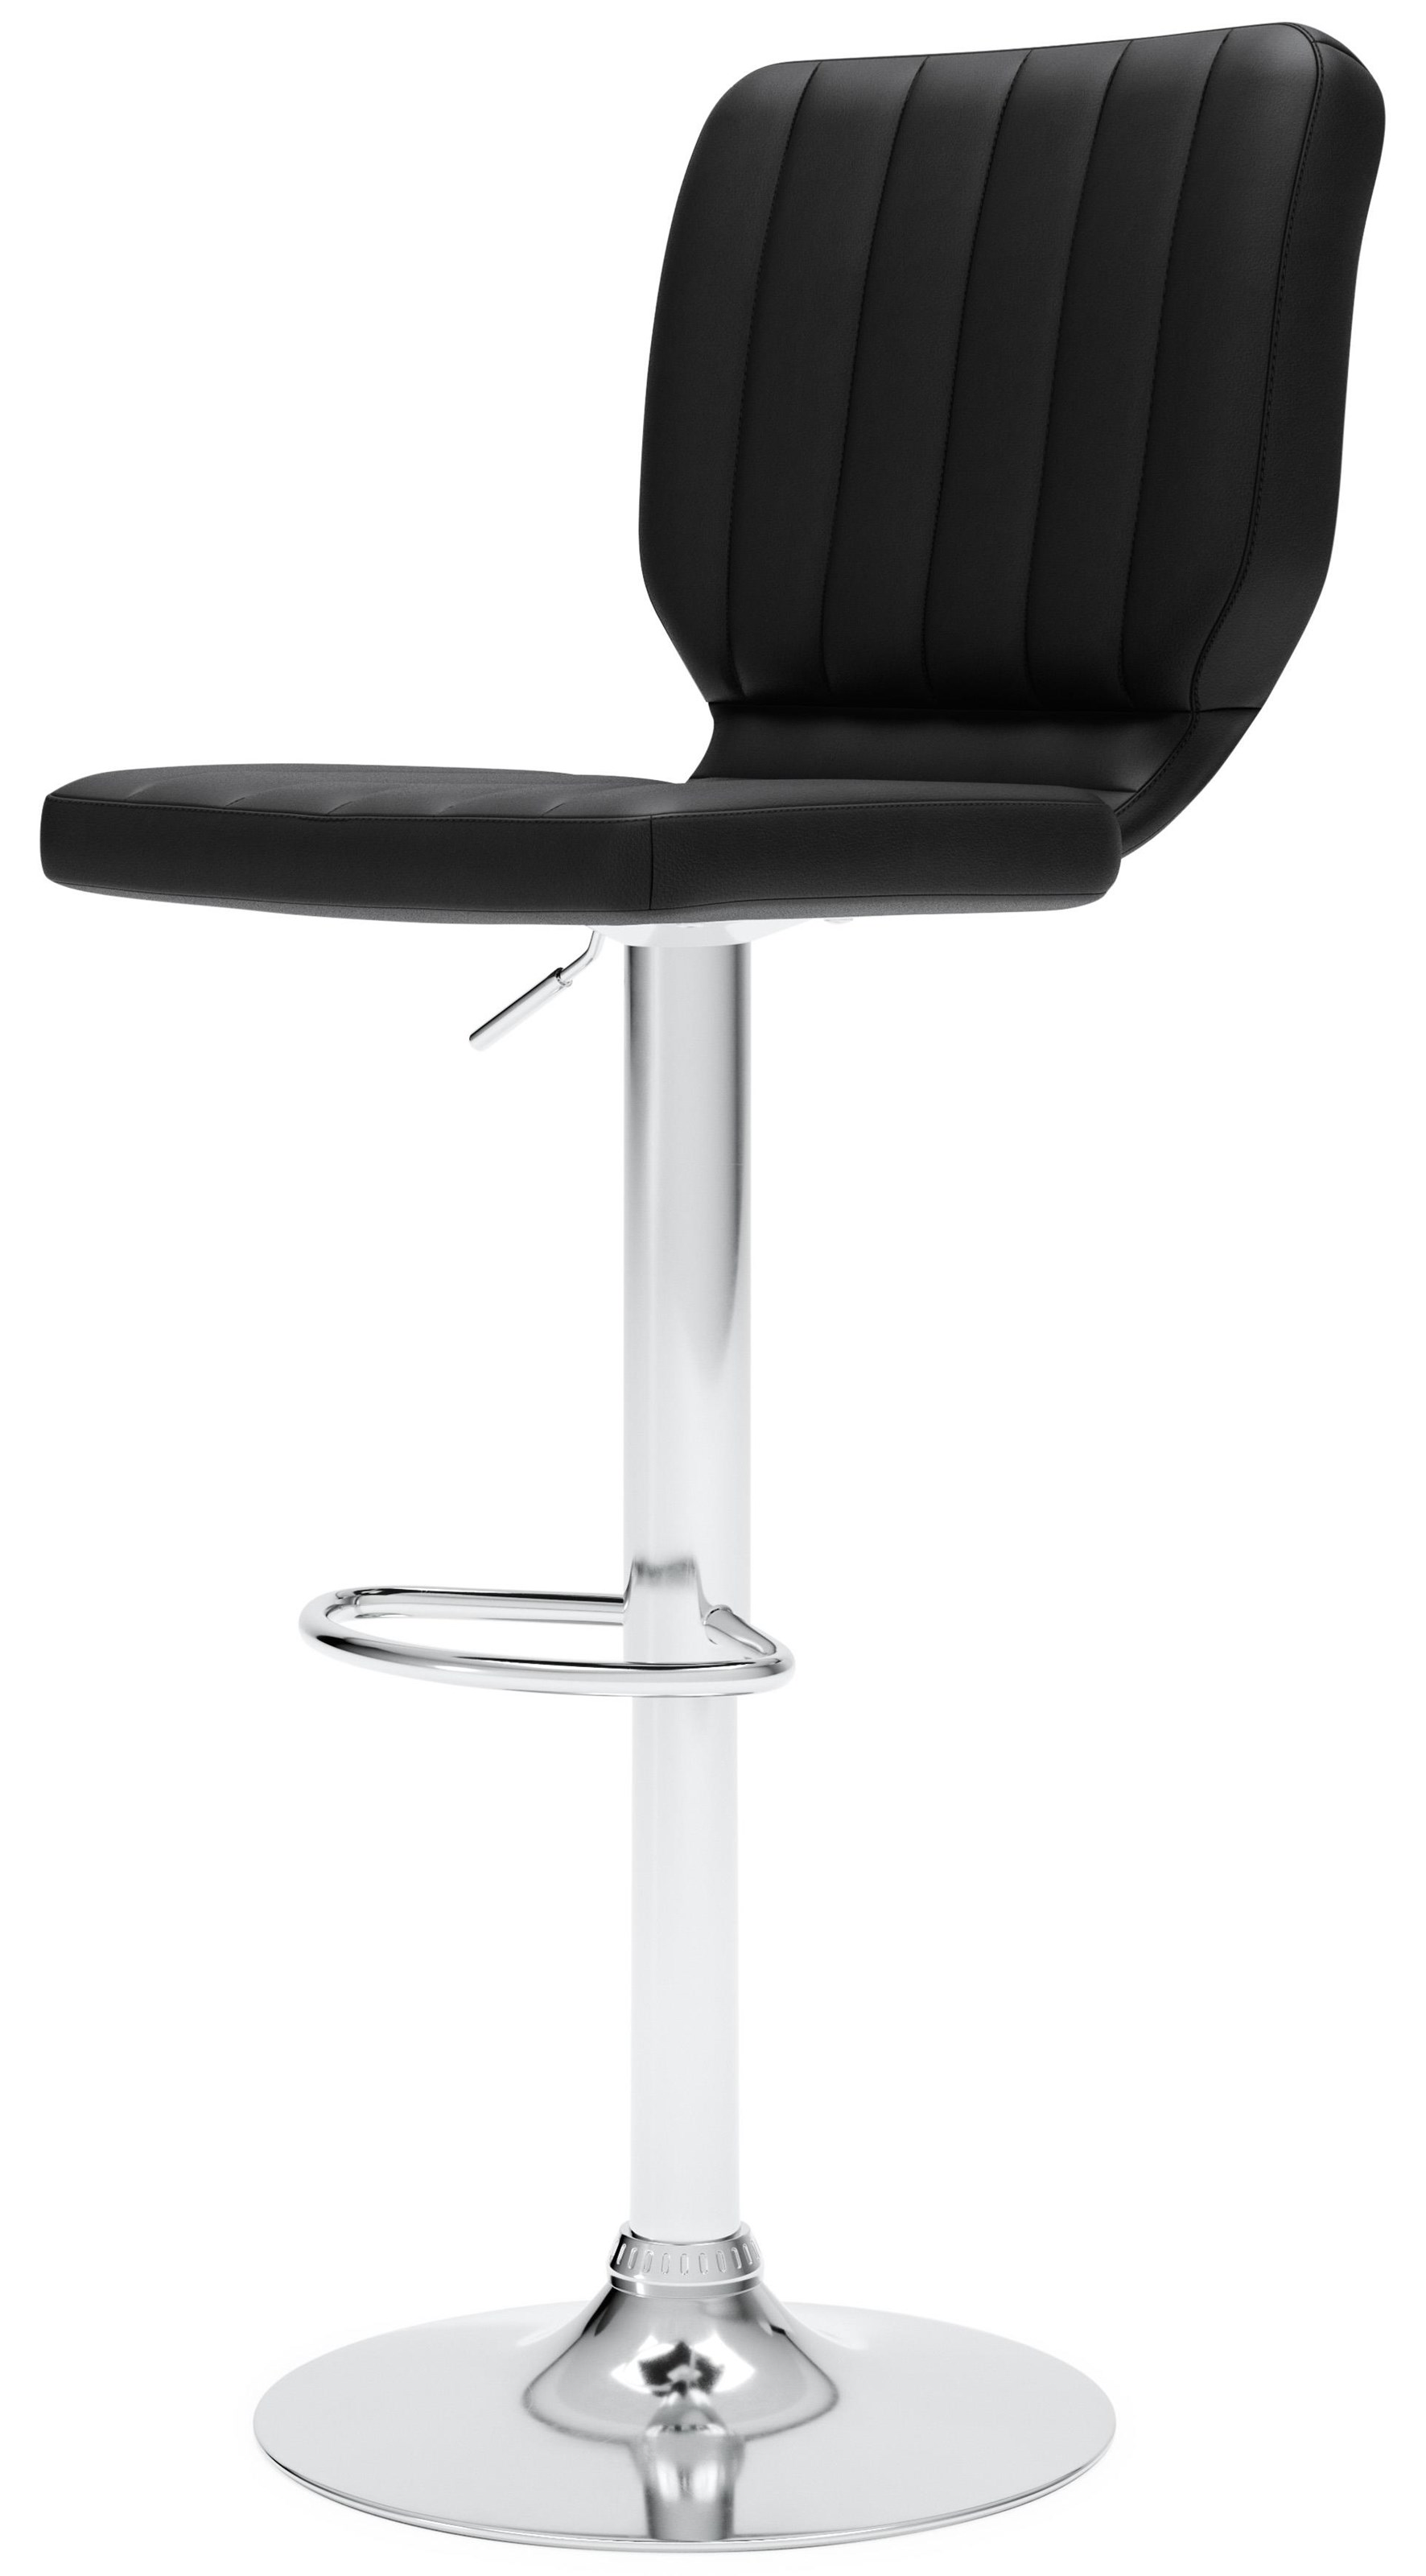 Pollzen Adjustable Height Upholstered Swivel Bar Sto by Signature Design by Ashley at Sam Levitz Outlet